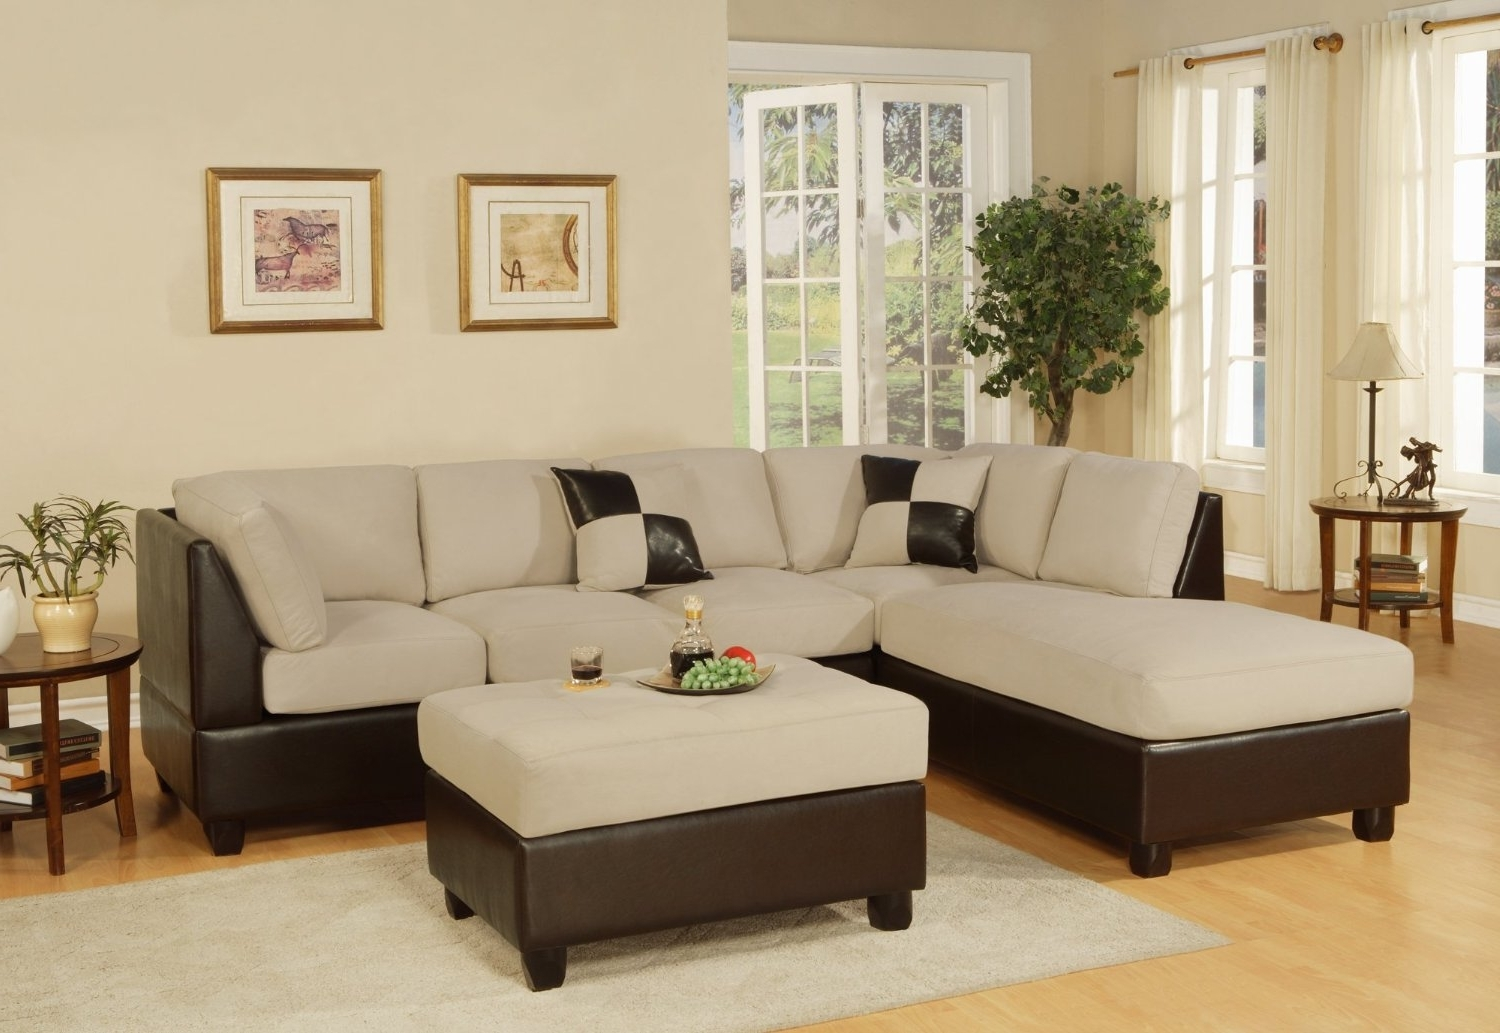 Furniture : Sectional Sofa 80 X 80 Corner Sofa Extension Sectional Pertaining To Latest Hawaii Sectional Sofas (View 11 of 15)